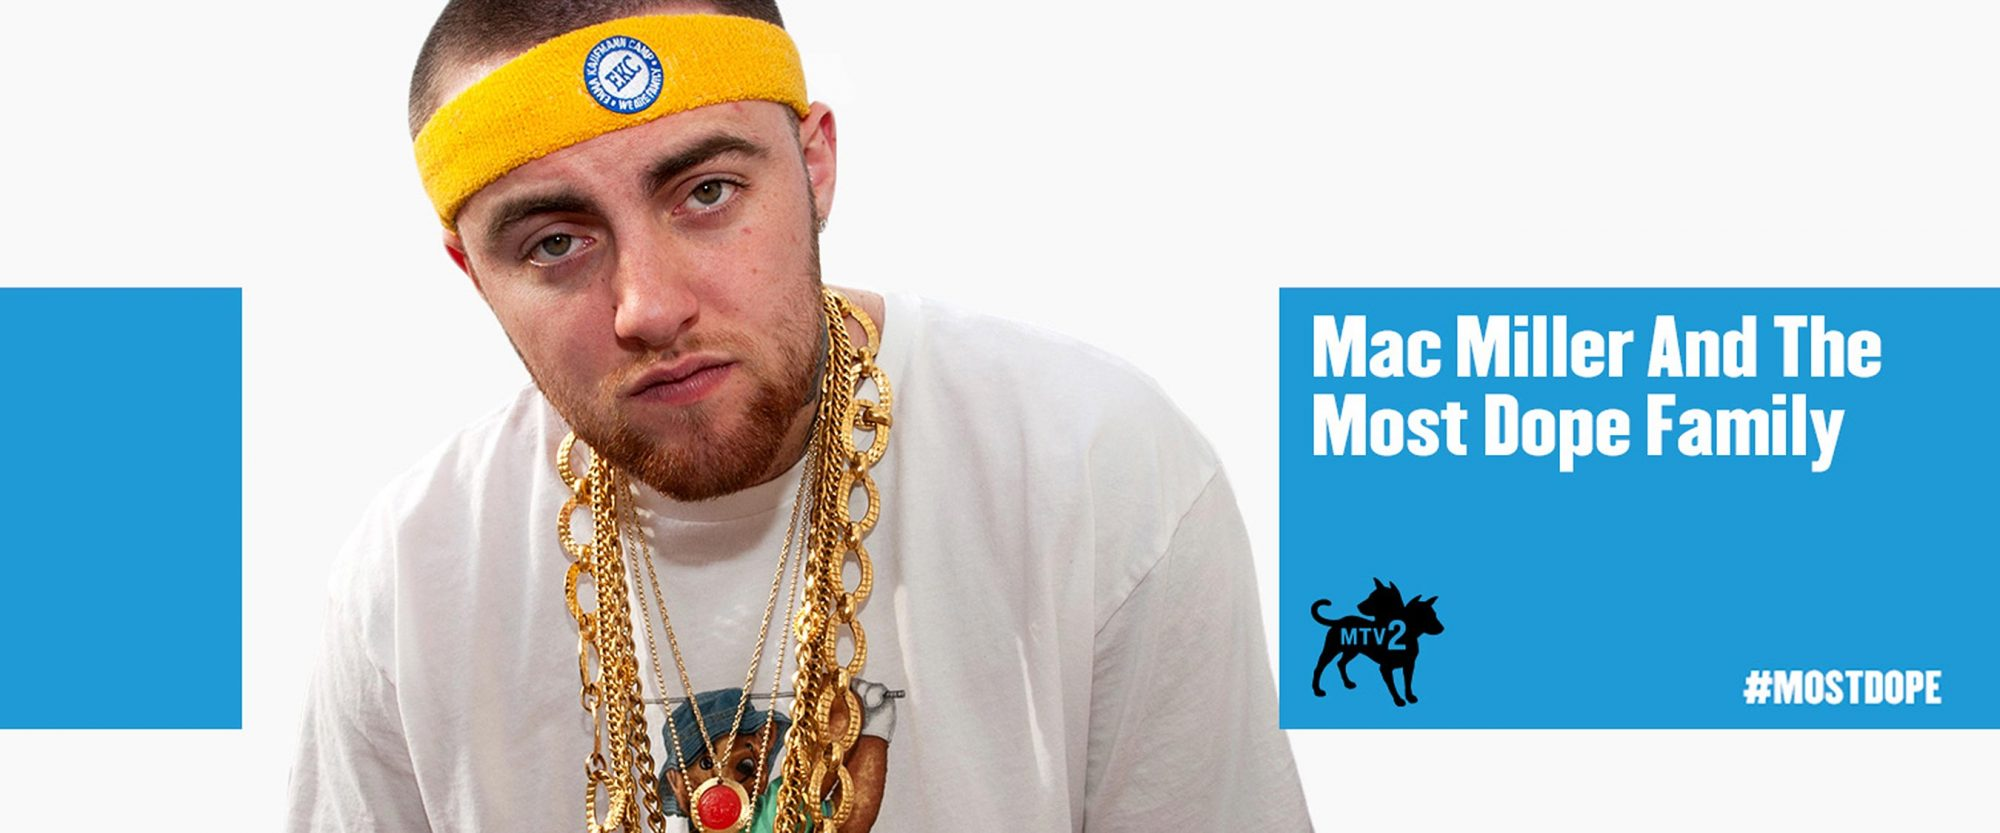 mac miller and the most dope familyCredit: MTV